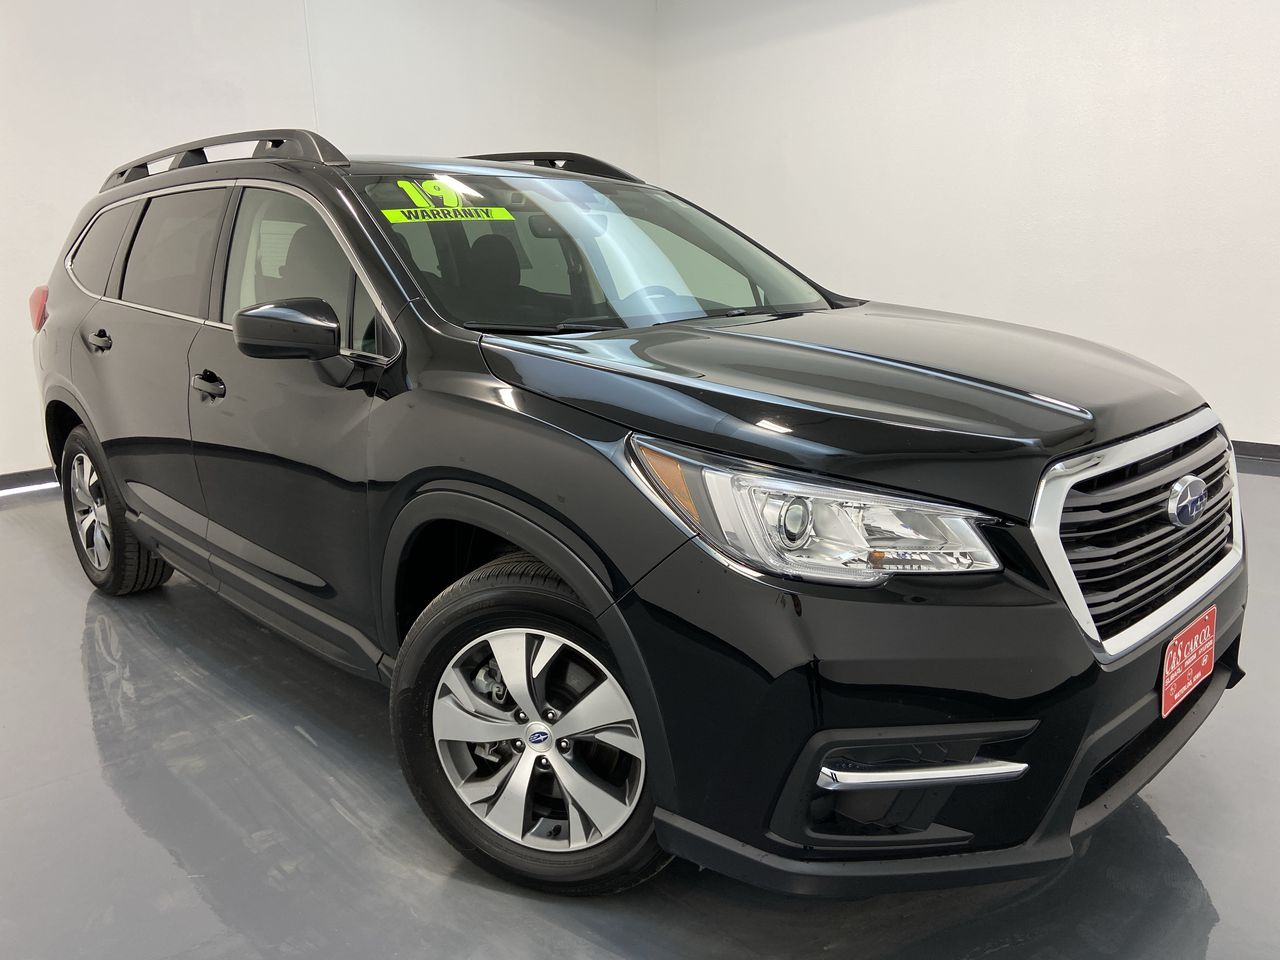 2019 Subaru ASCENT Premium AWD w/Eyesight  - SB7247  - C & S Car Company